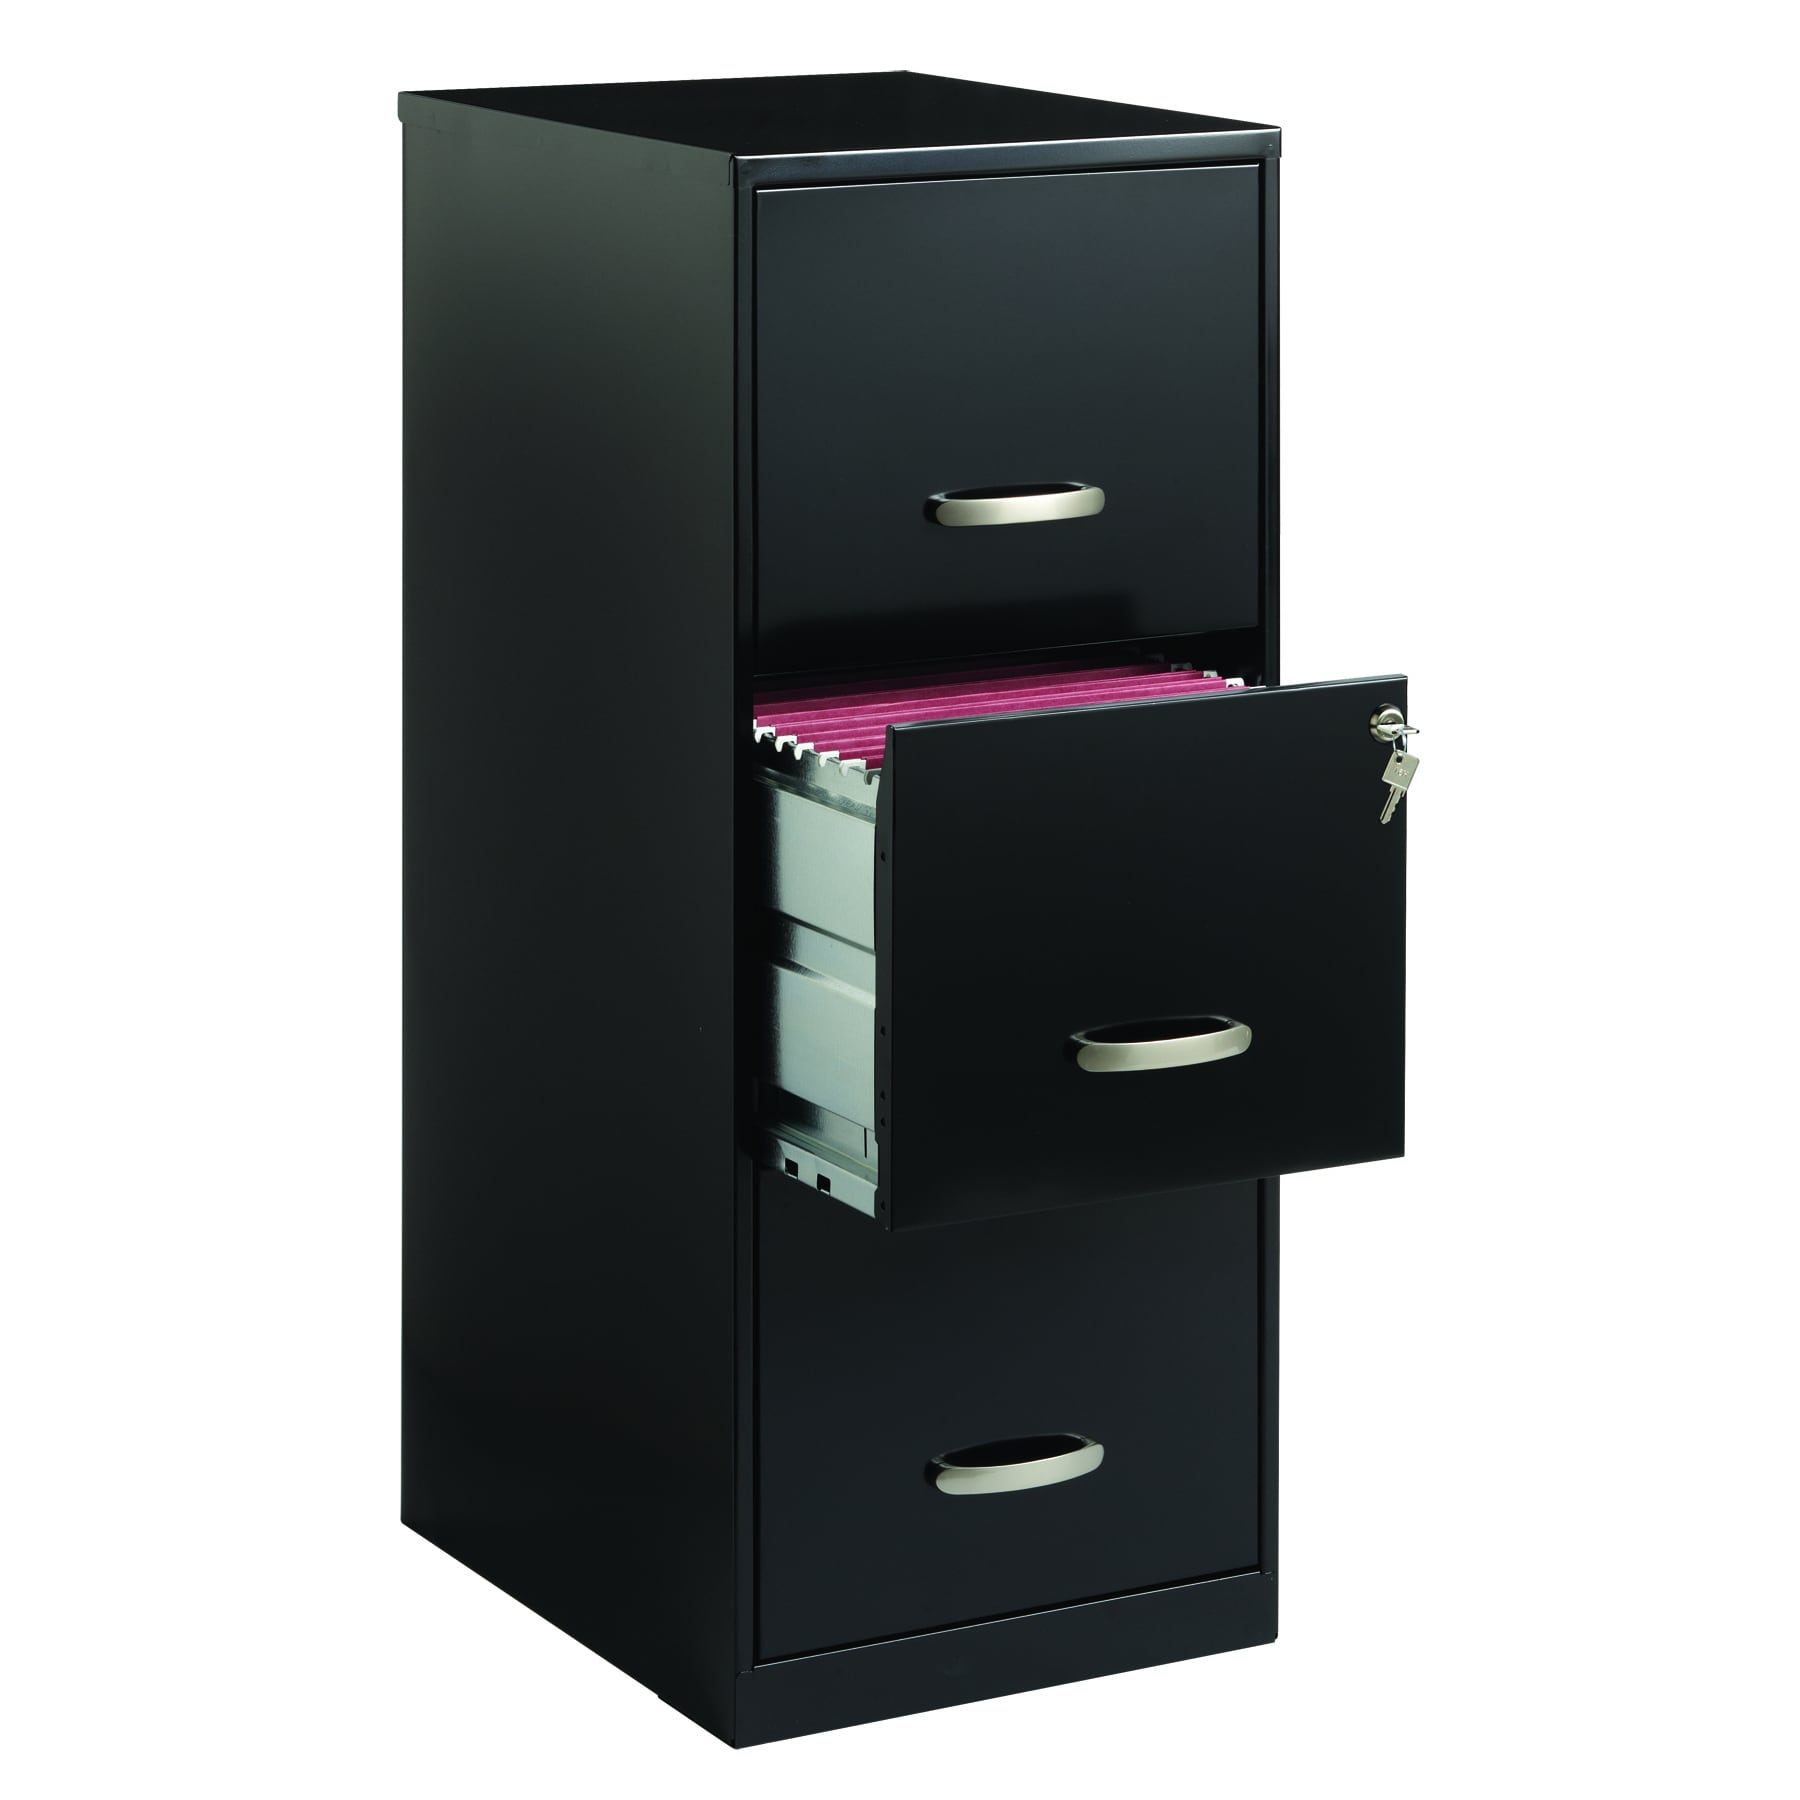 Vertical File Cabinets For Less | Overstock.com